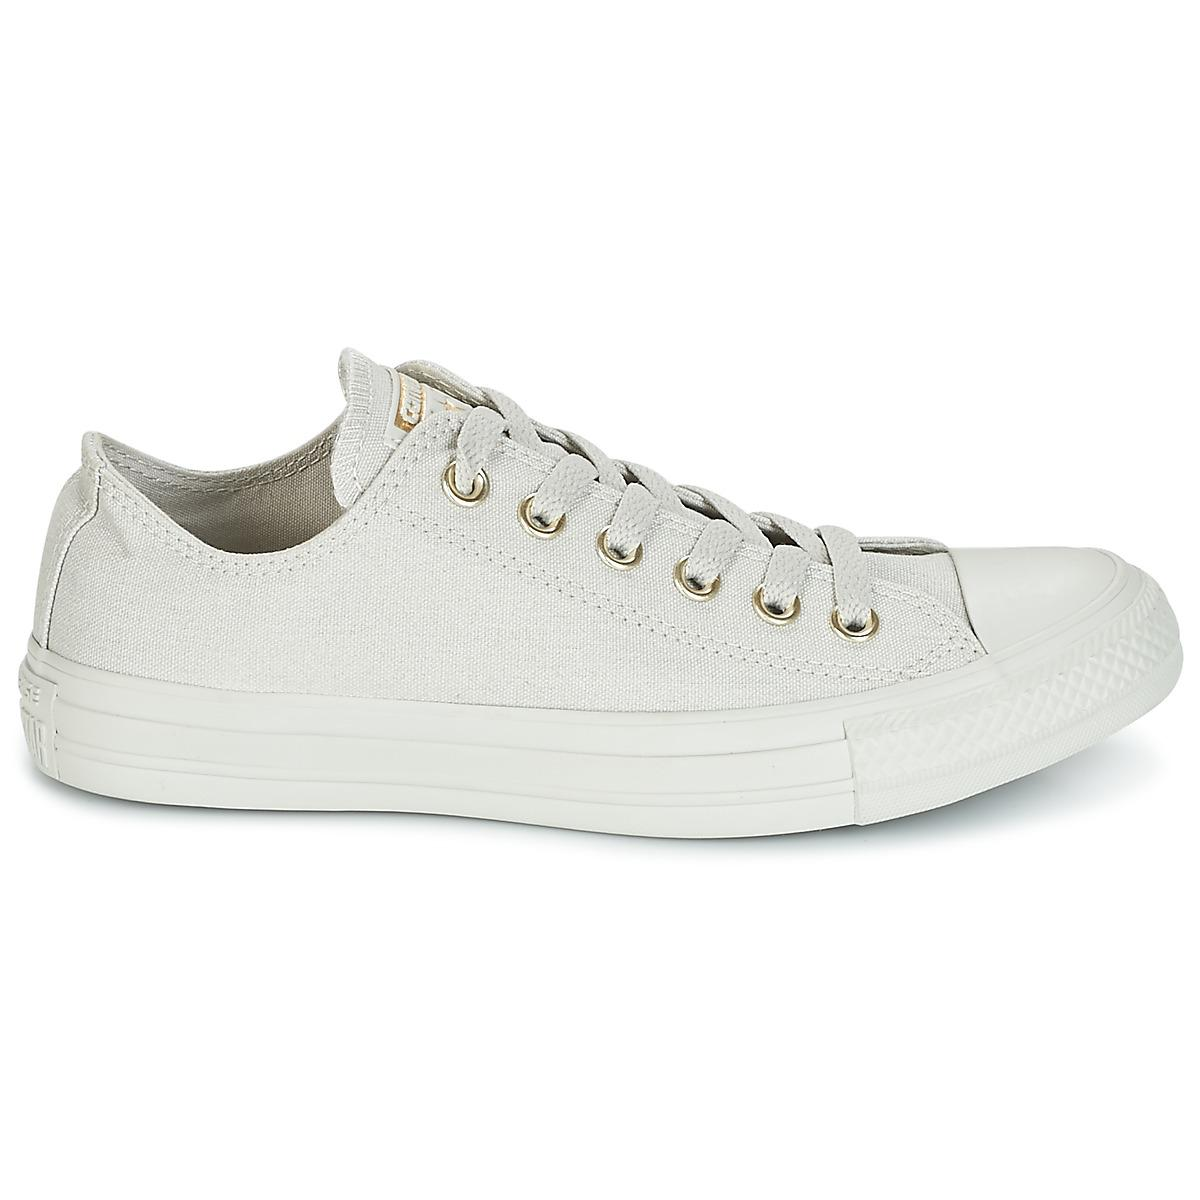 e7c315c54d8b83 Converse - Gray Chuck Taylor All Star Ox Mono Glam Canvas Color Shoes ( trainers). View fullscreen